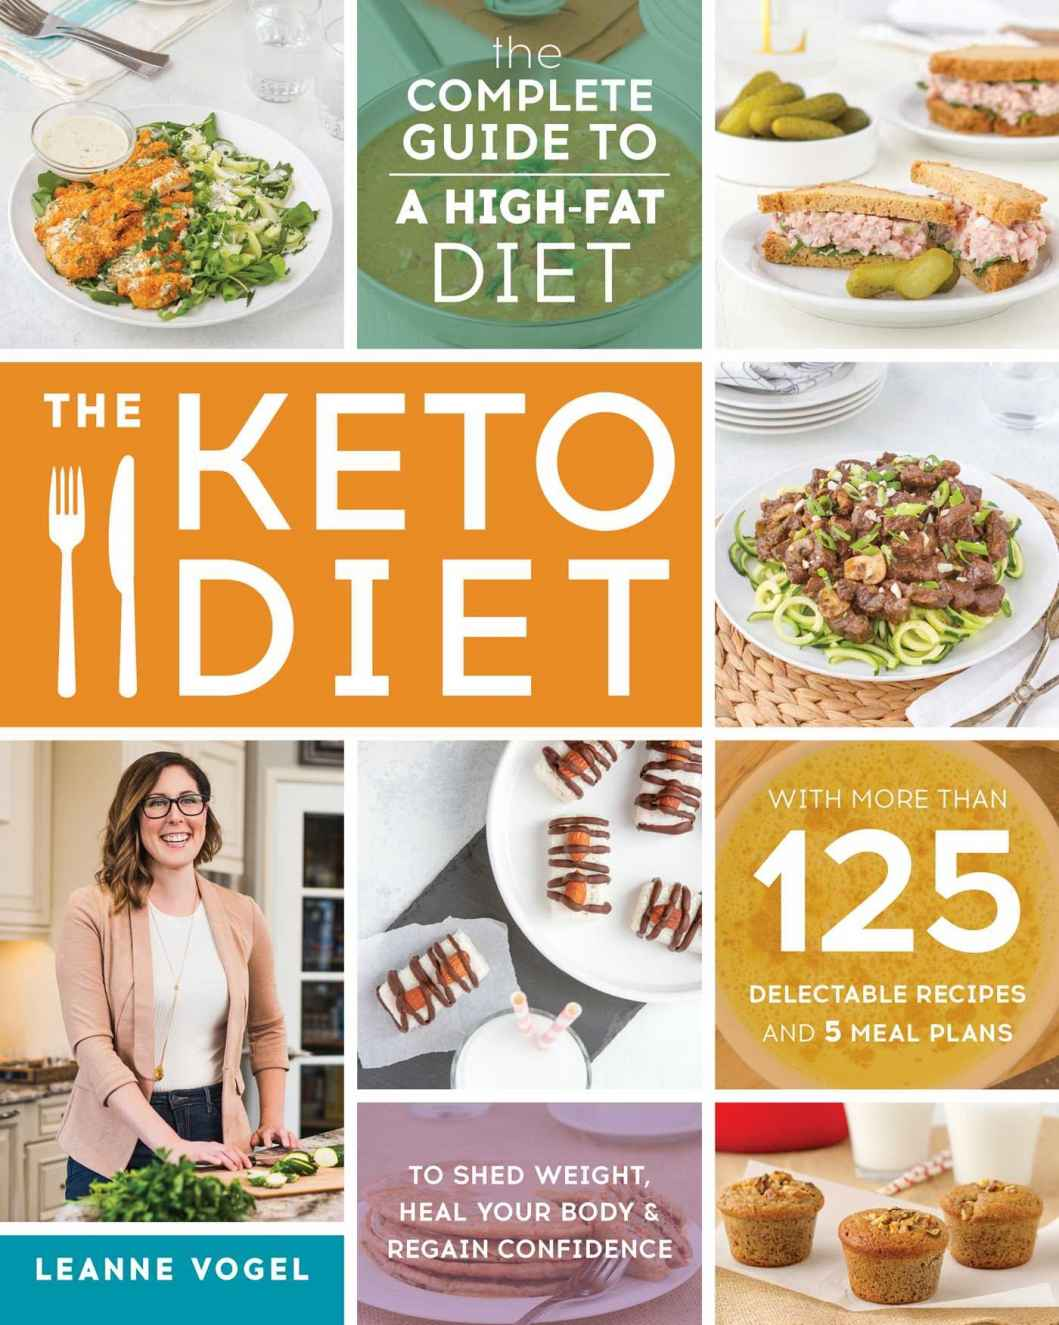 The Keto Diet: The Complete Guide to a High-Fat Diet, More Than 125 Delectable Recipes and 5 Meal Plans to Shed Weight - eBook (Fast instant delivery)